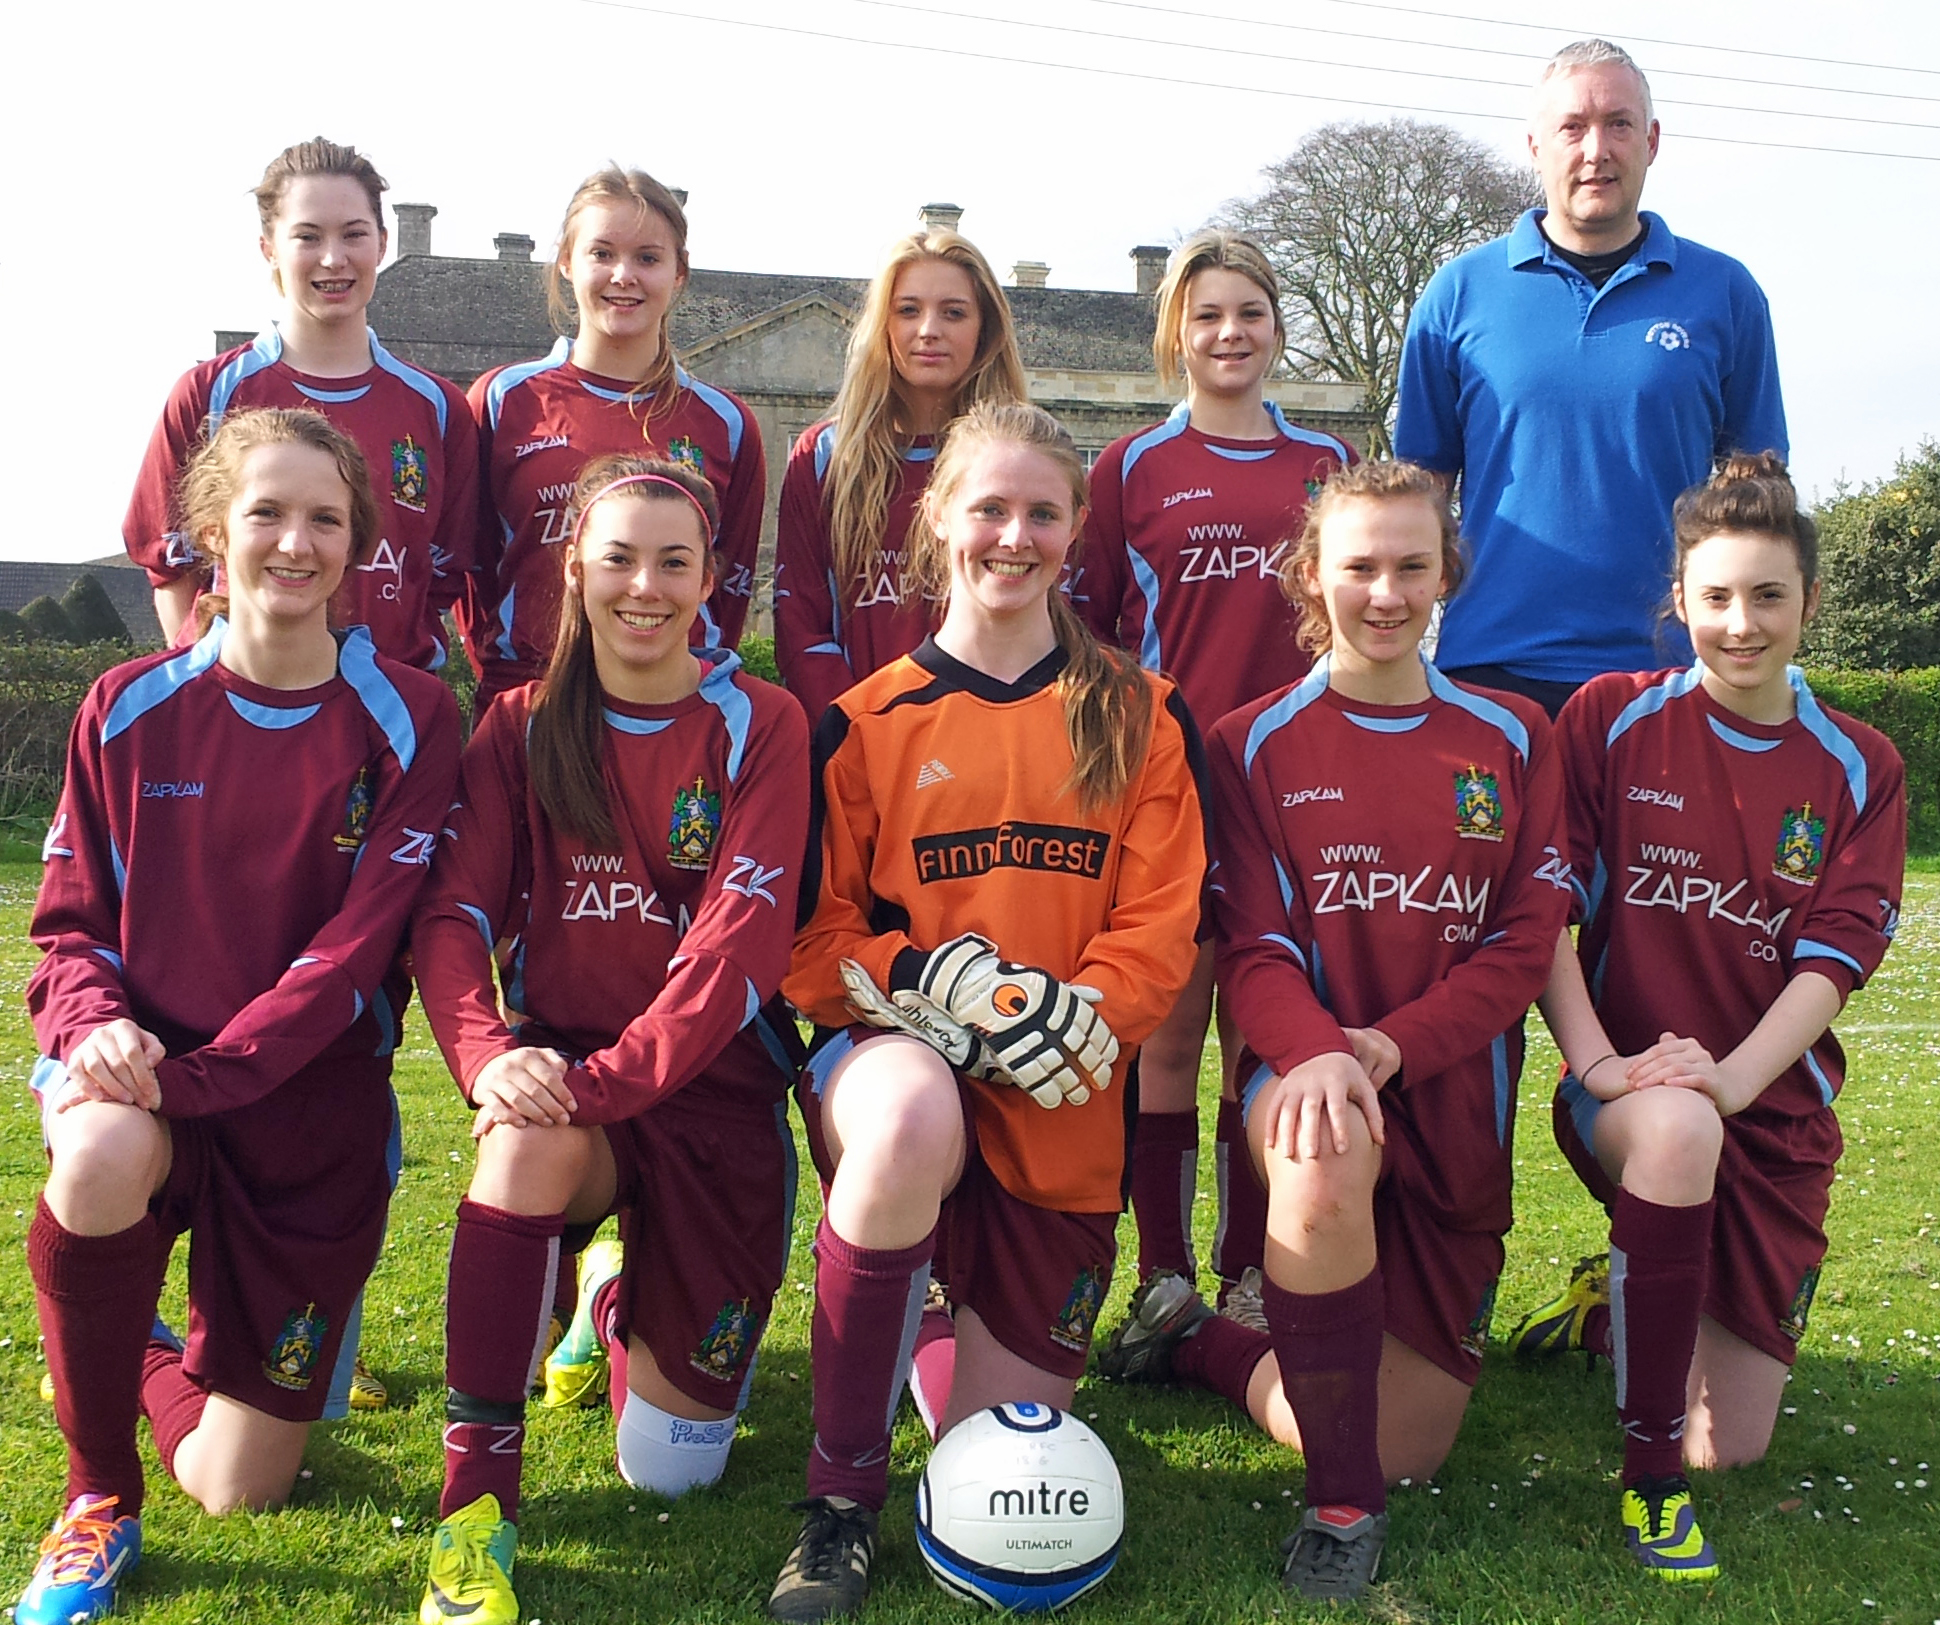 Wotton Rovers under-18 girls